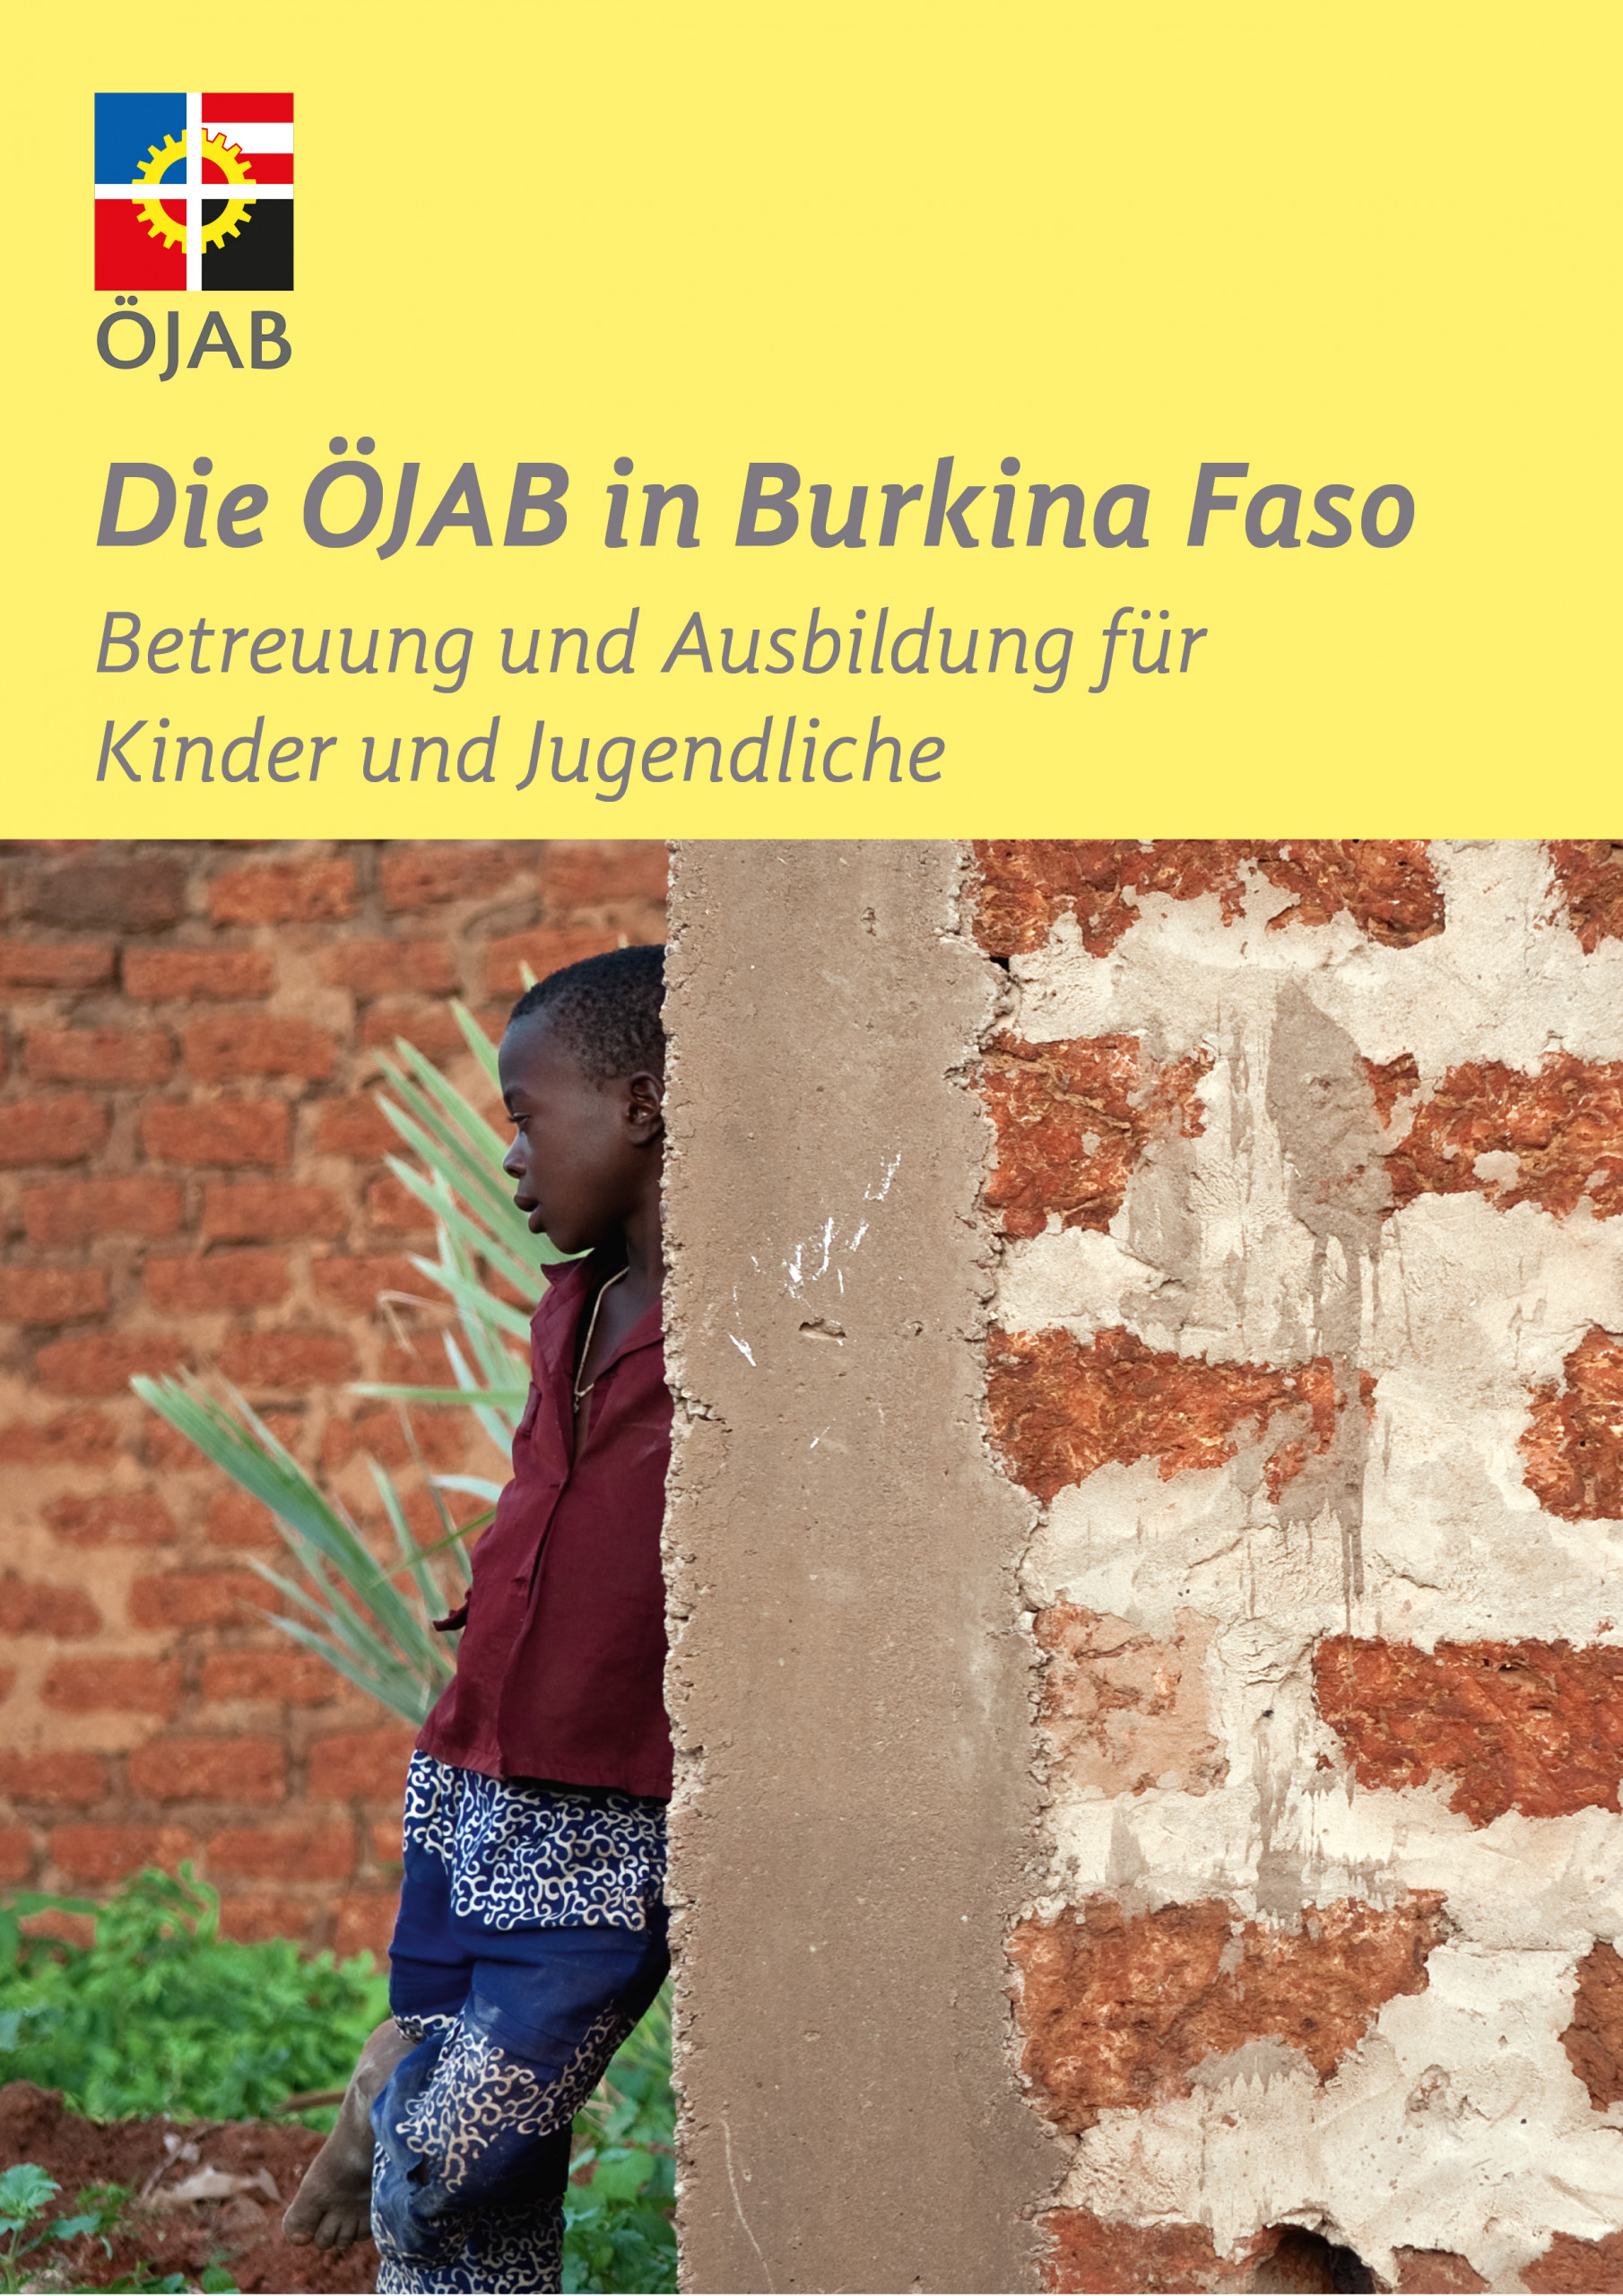 Cover of the ÖJAB development cooperation folder about support and education for children and youths in Burkina Faso.